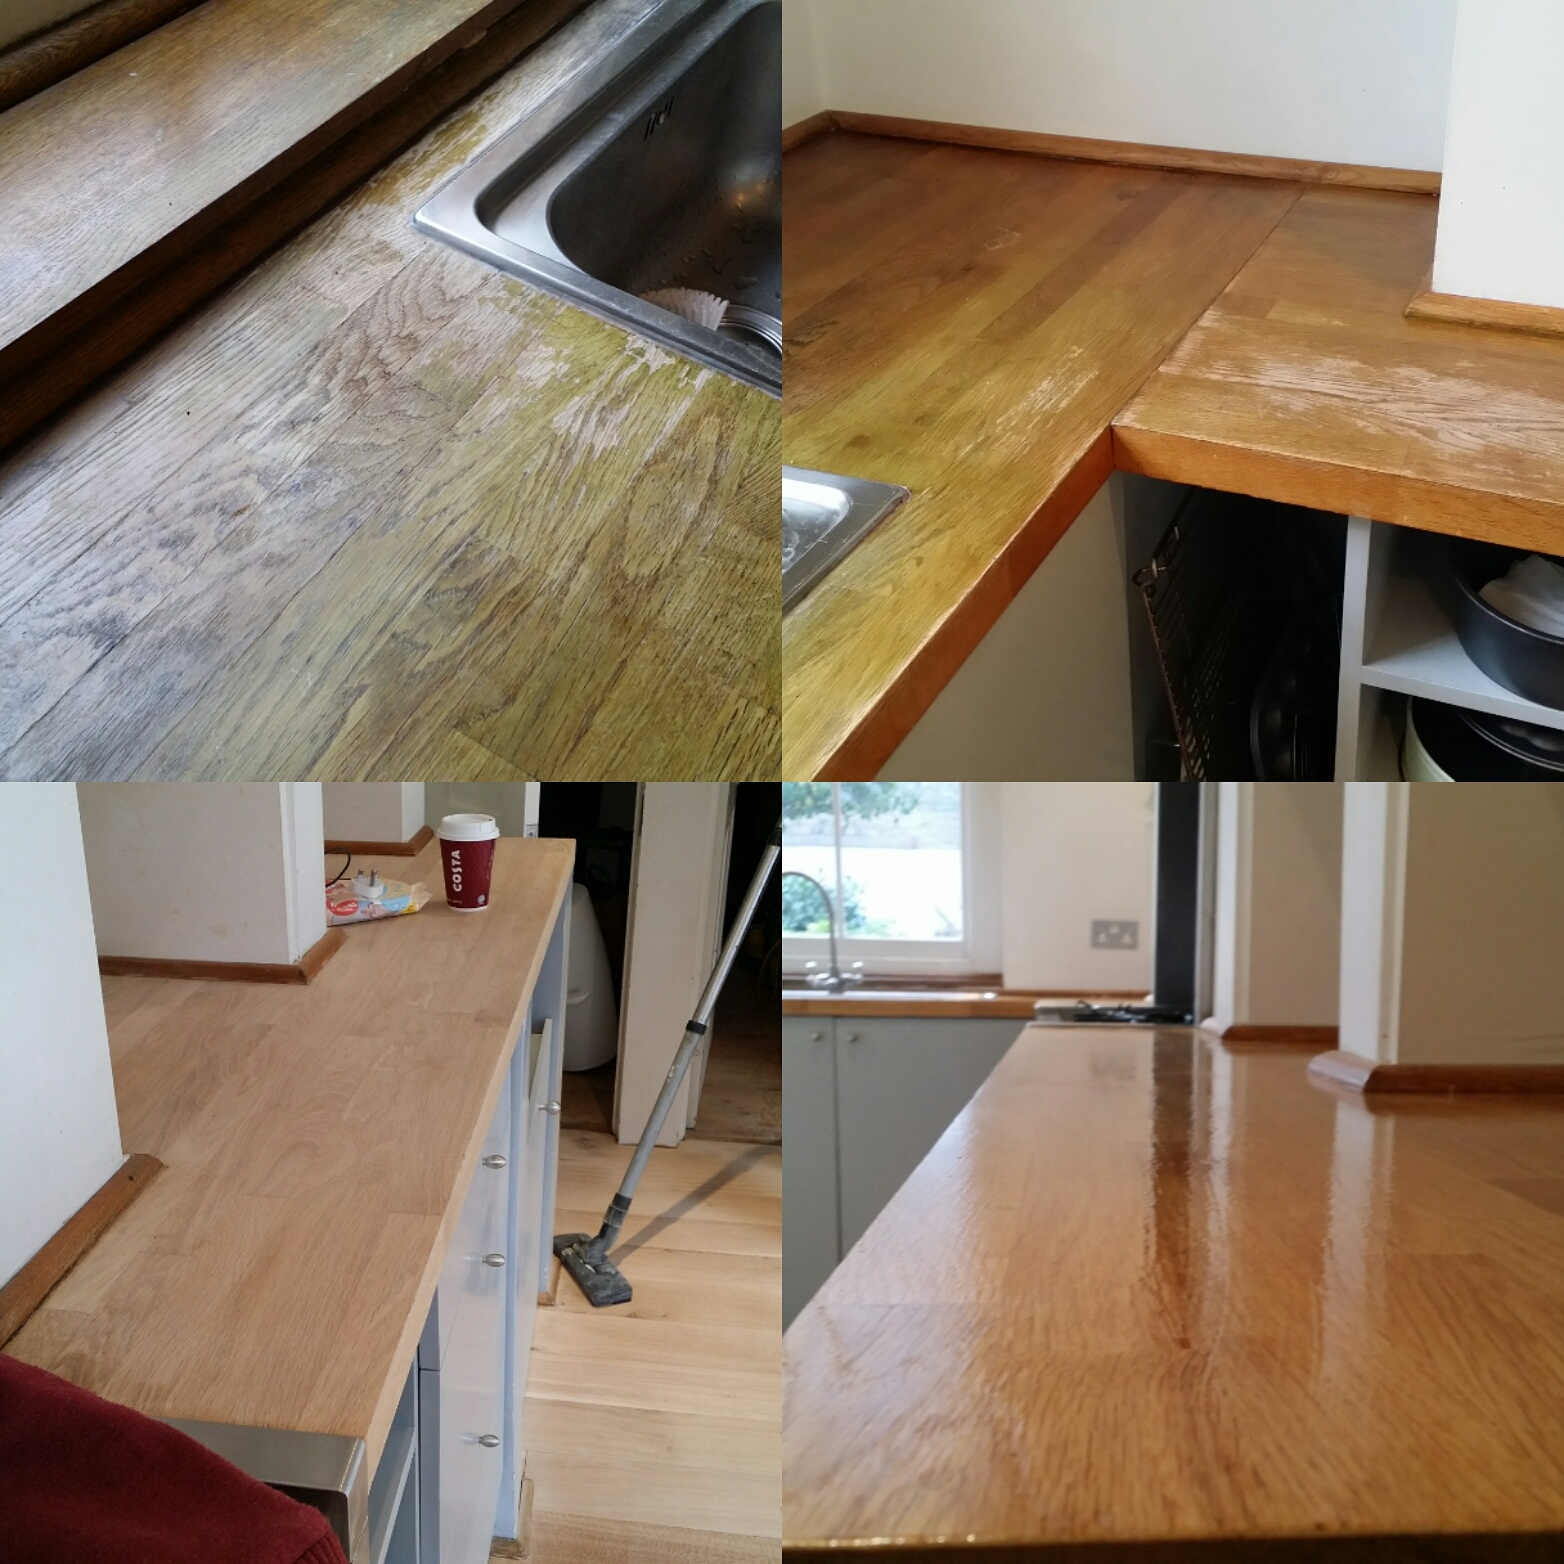 Kitchen Worktop Sanding and Refinishing